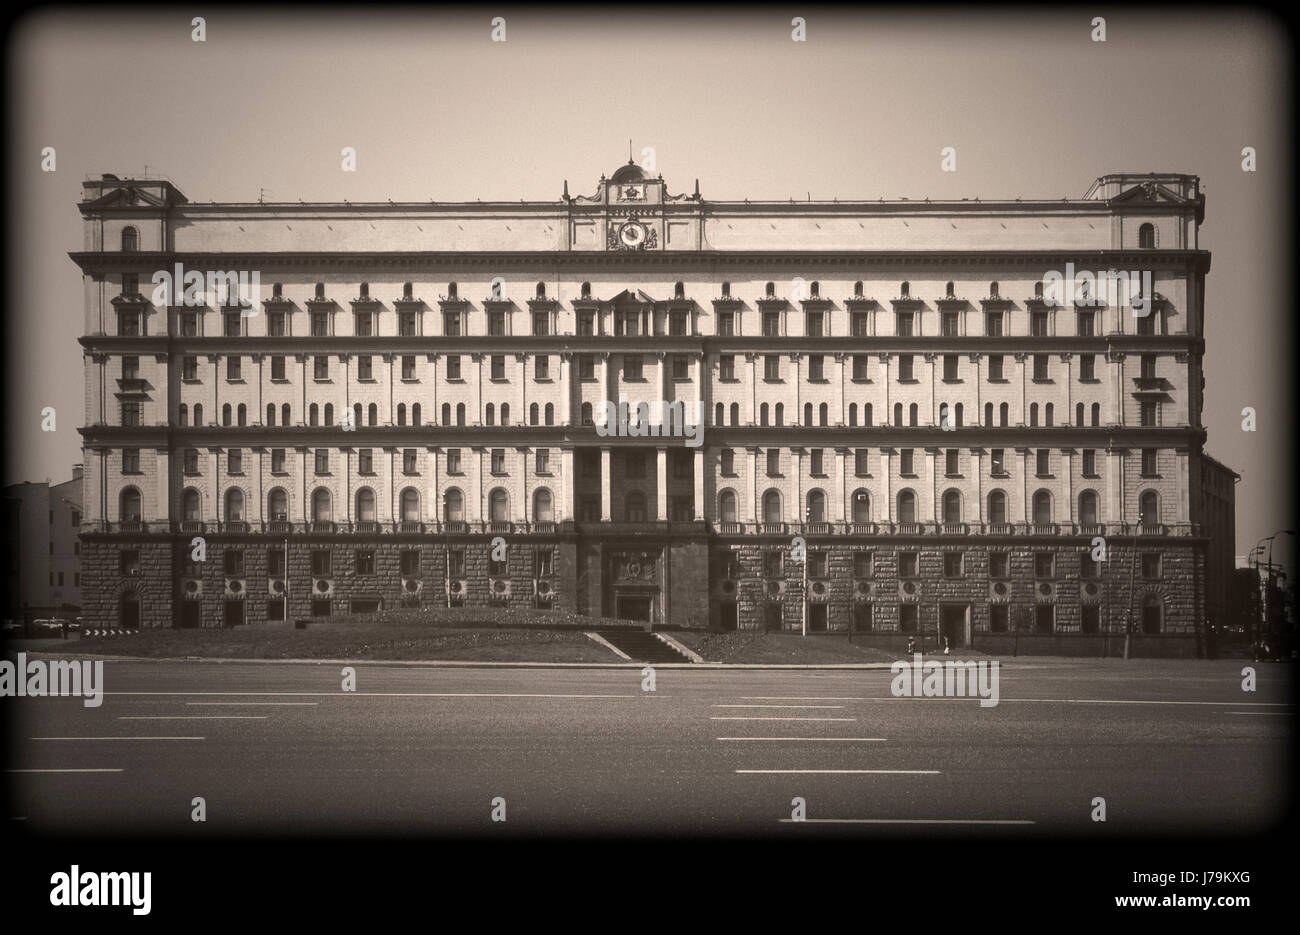 FSB (former KGB) headquarters building in Moscow, Russia - Stock Image